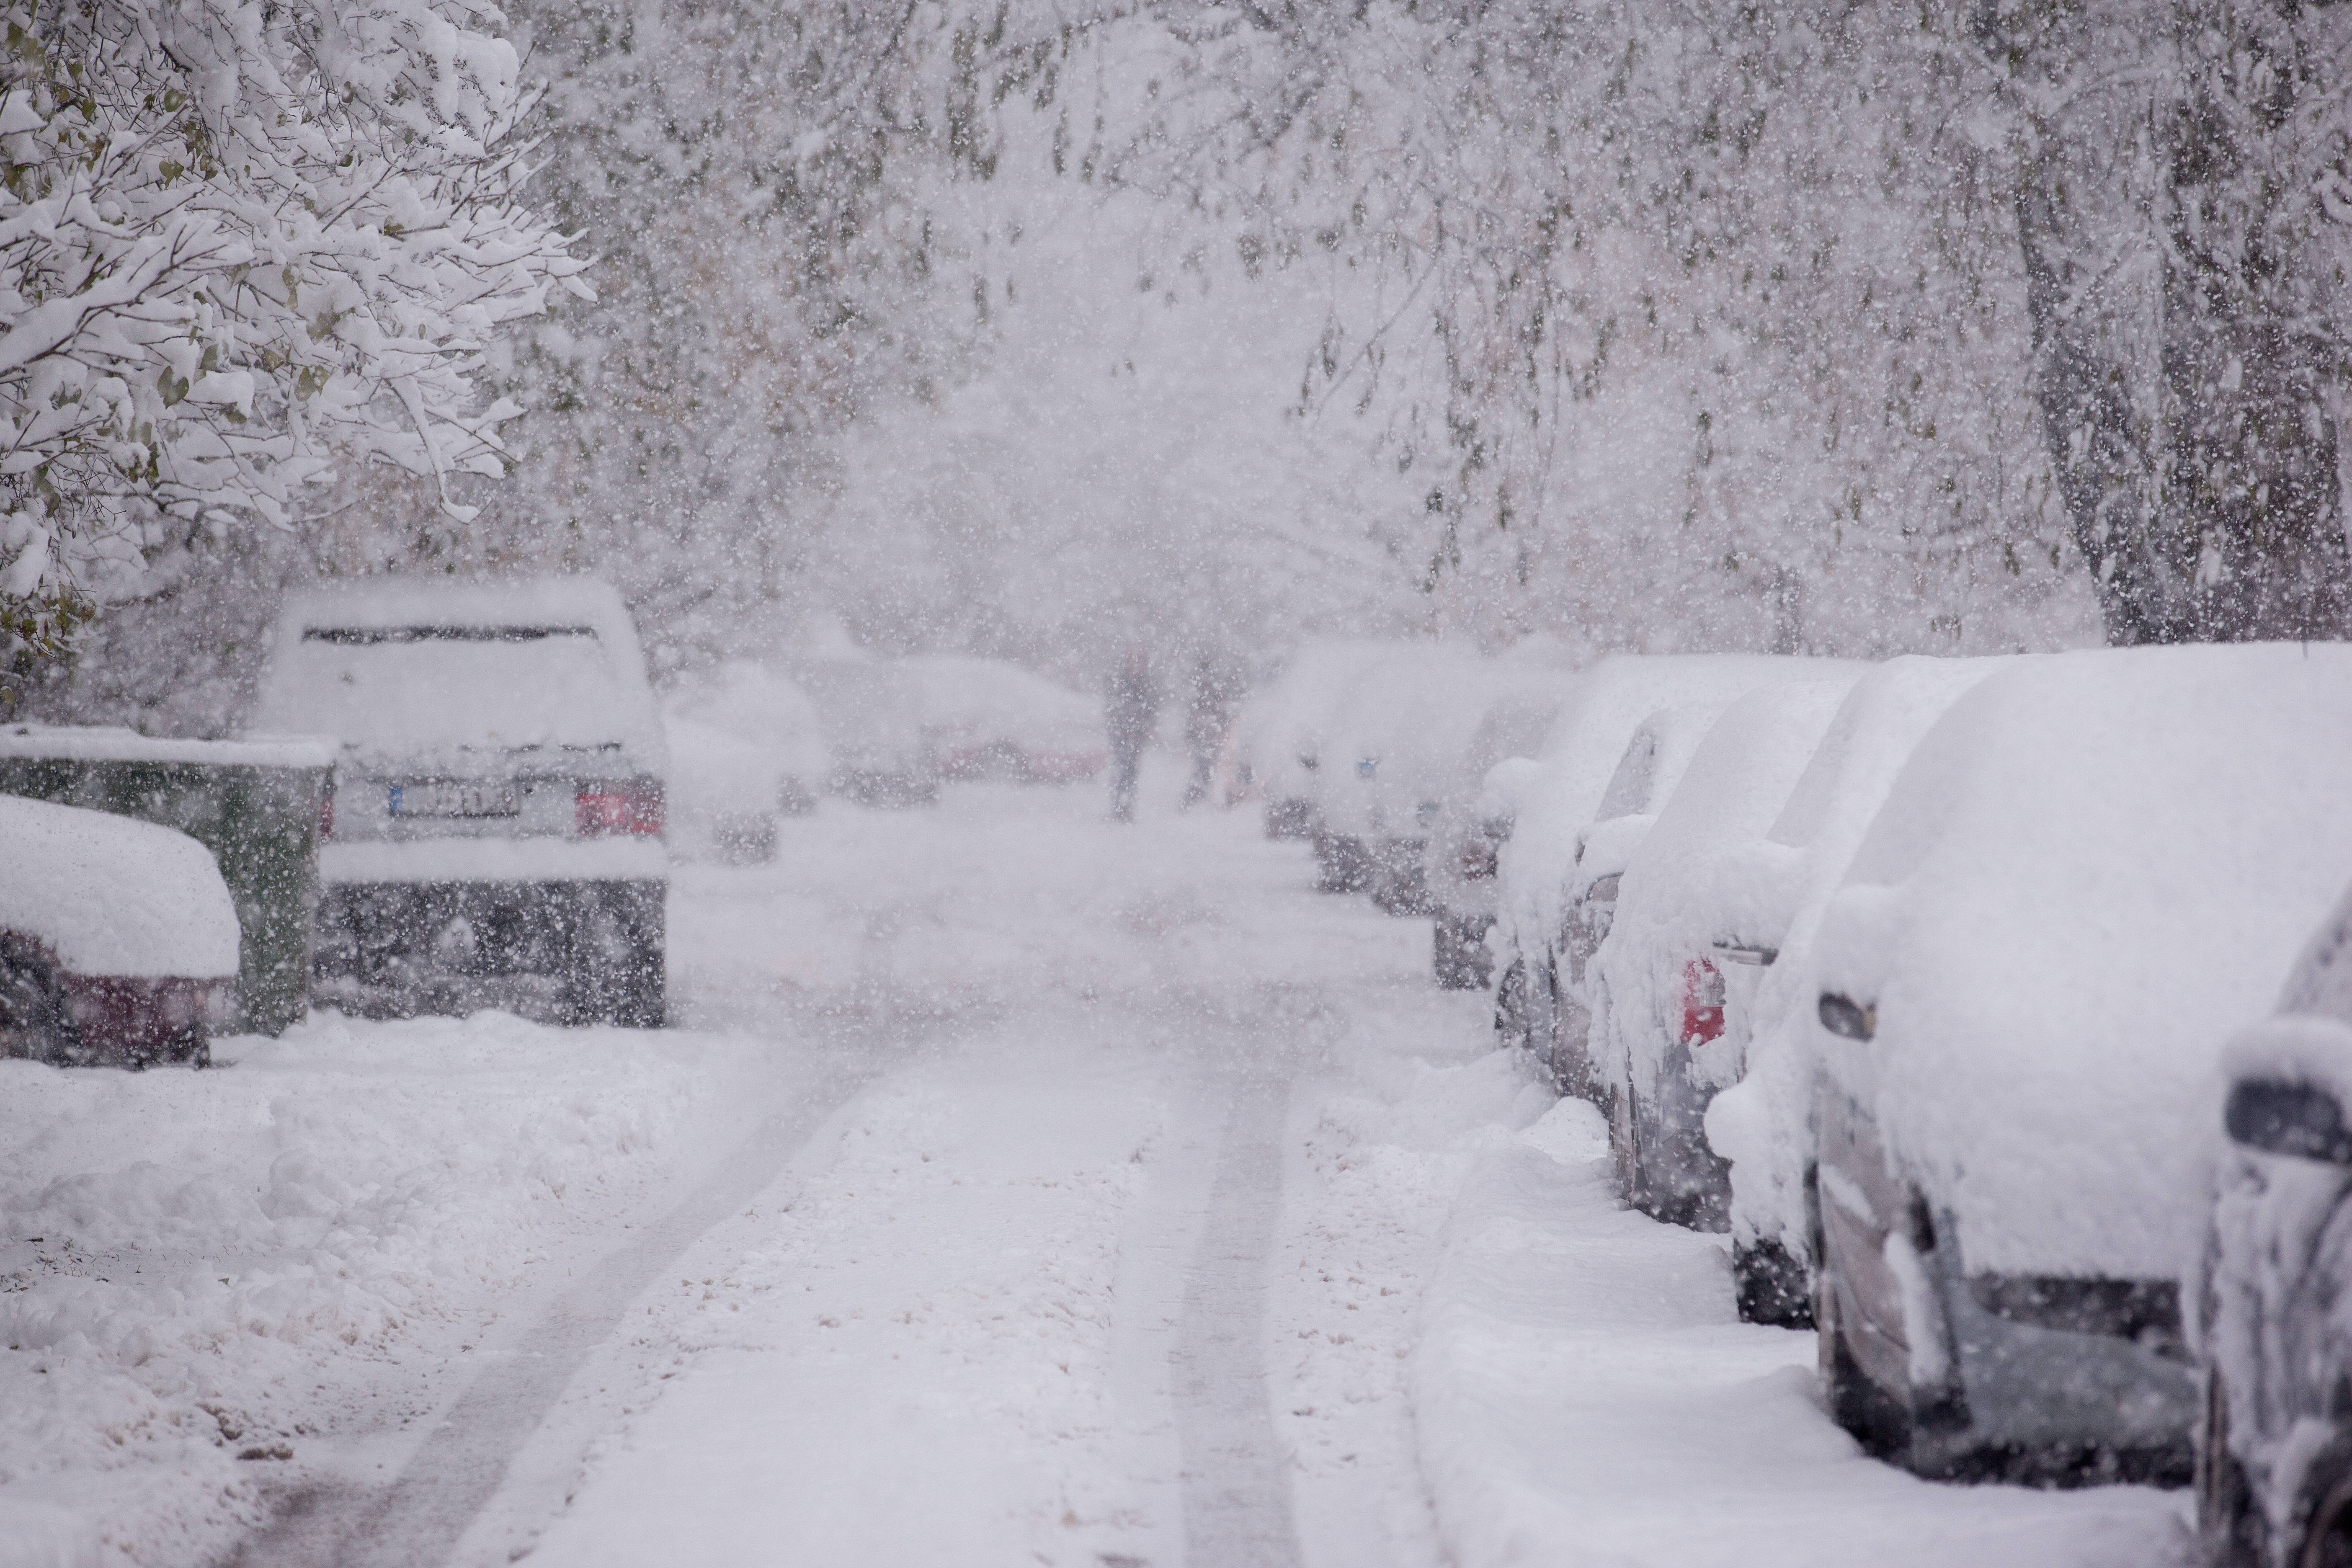 Roselle Police Offer Tips to Be Prepared for Snowstorms